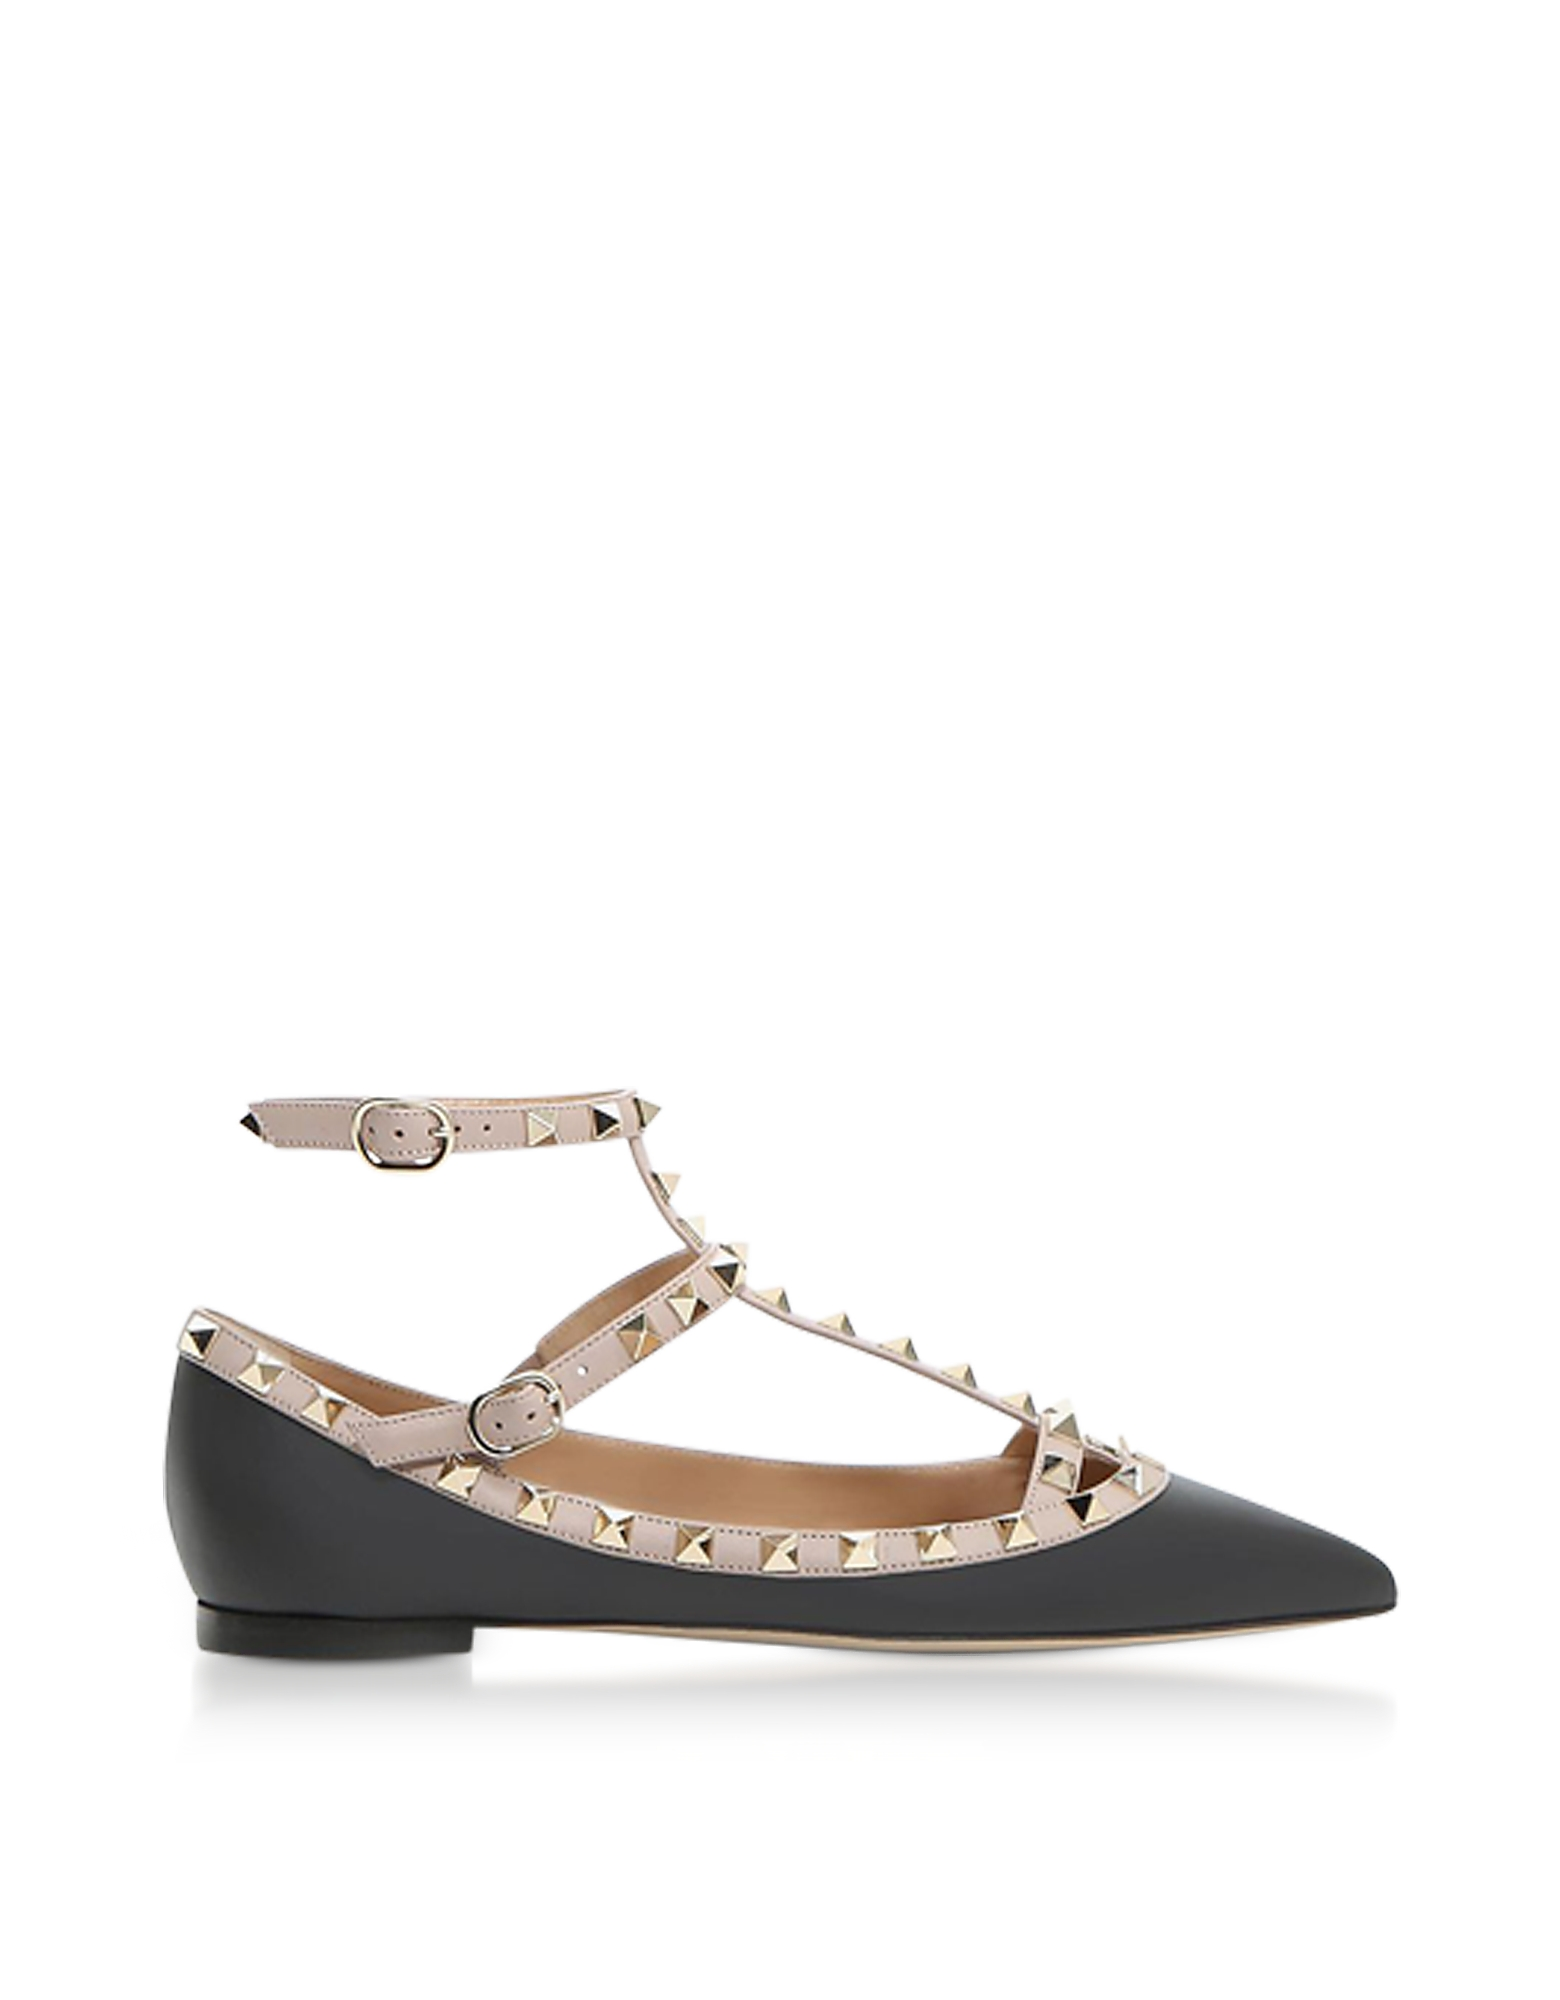 Valentino Shoes, Black Rockstud Ballerinas